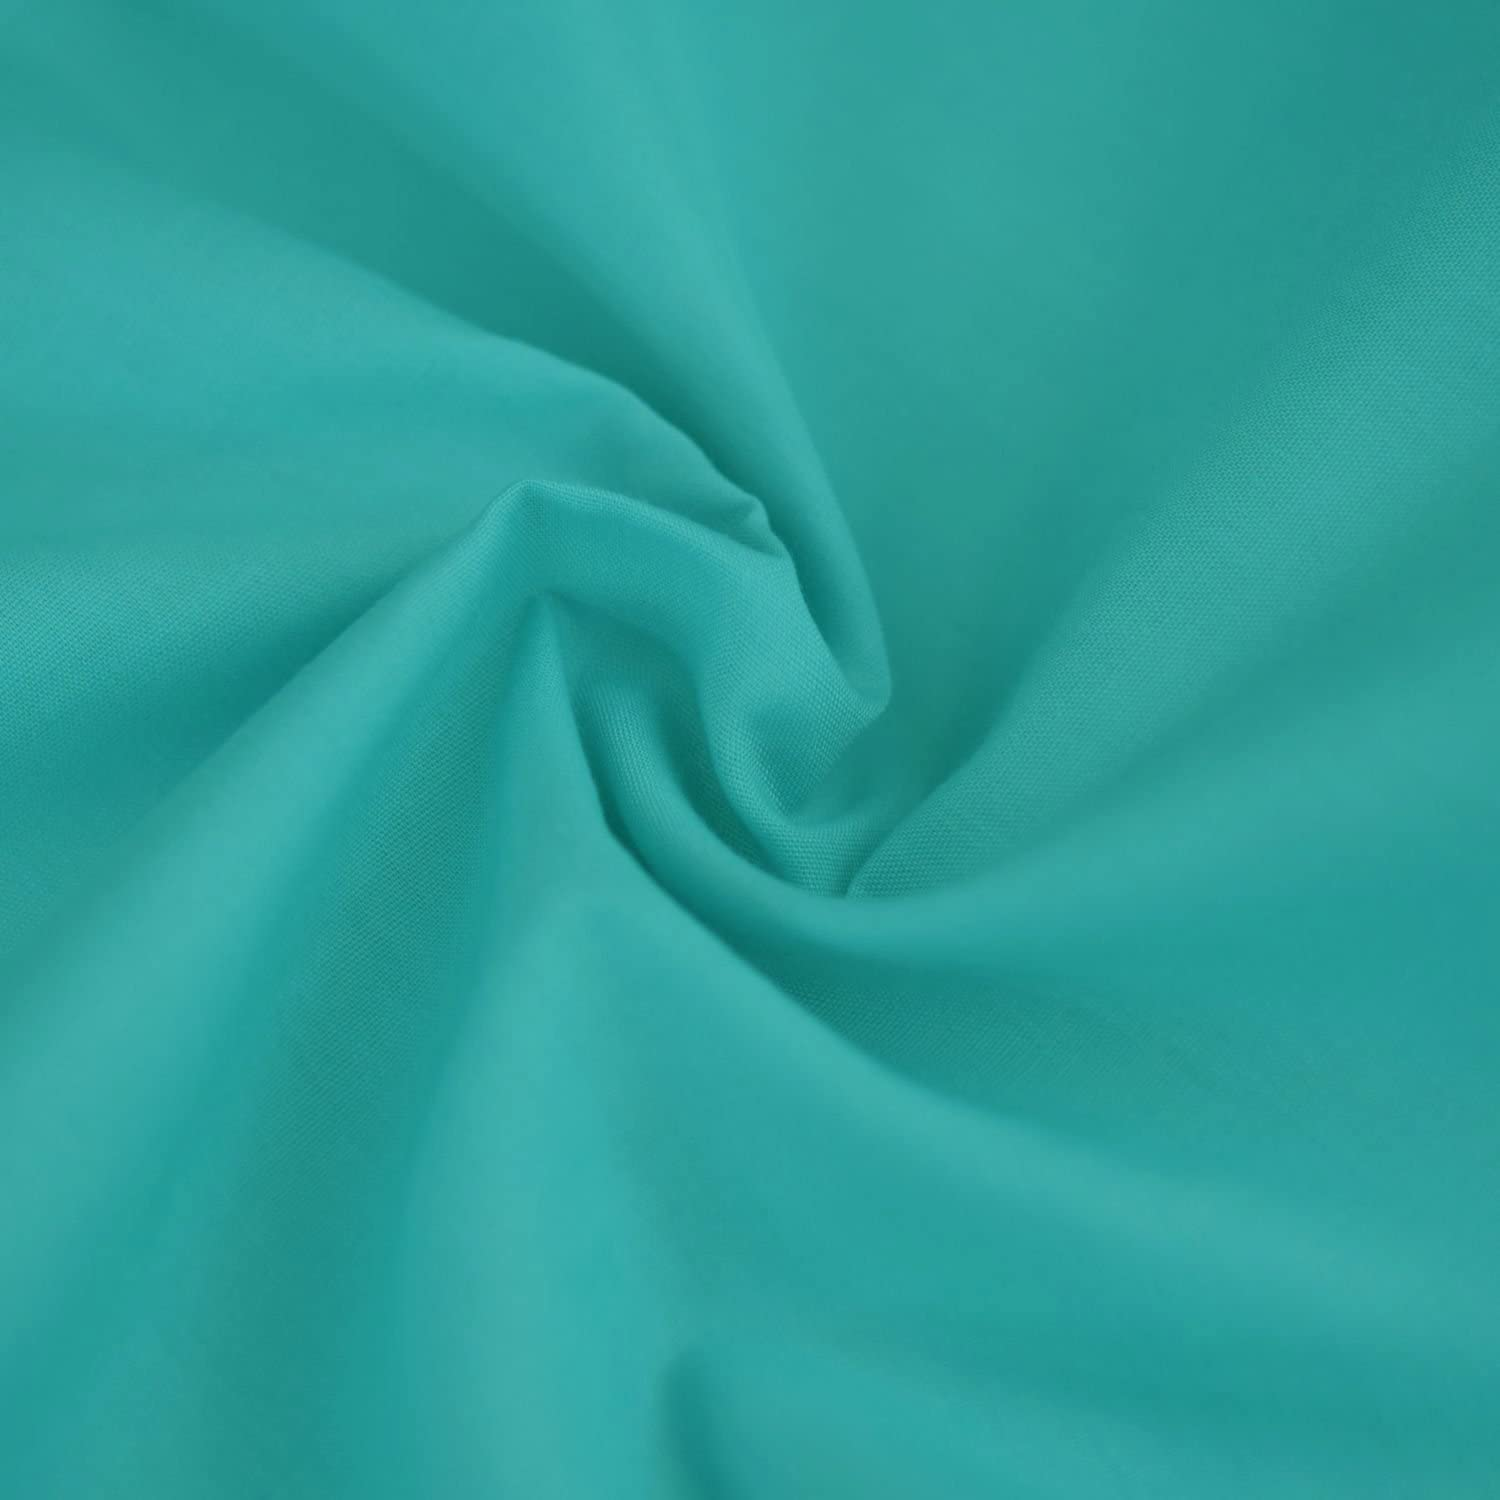 Aqua Turquoise Blue Plain Fabric Material POLY COTTON Crafts Quilting Sewing 1M